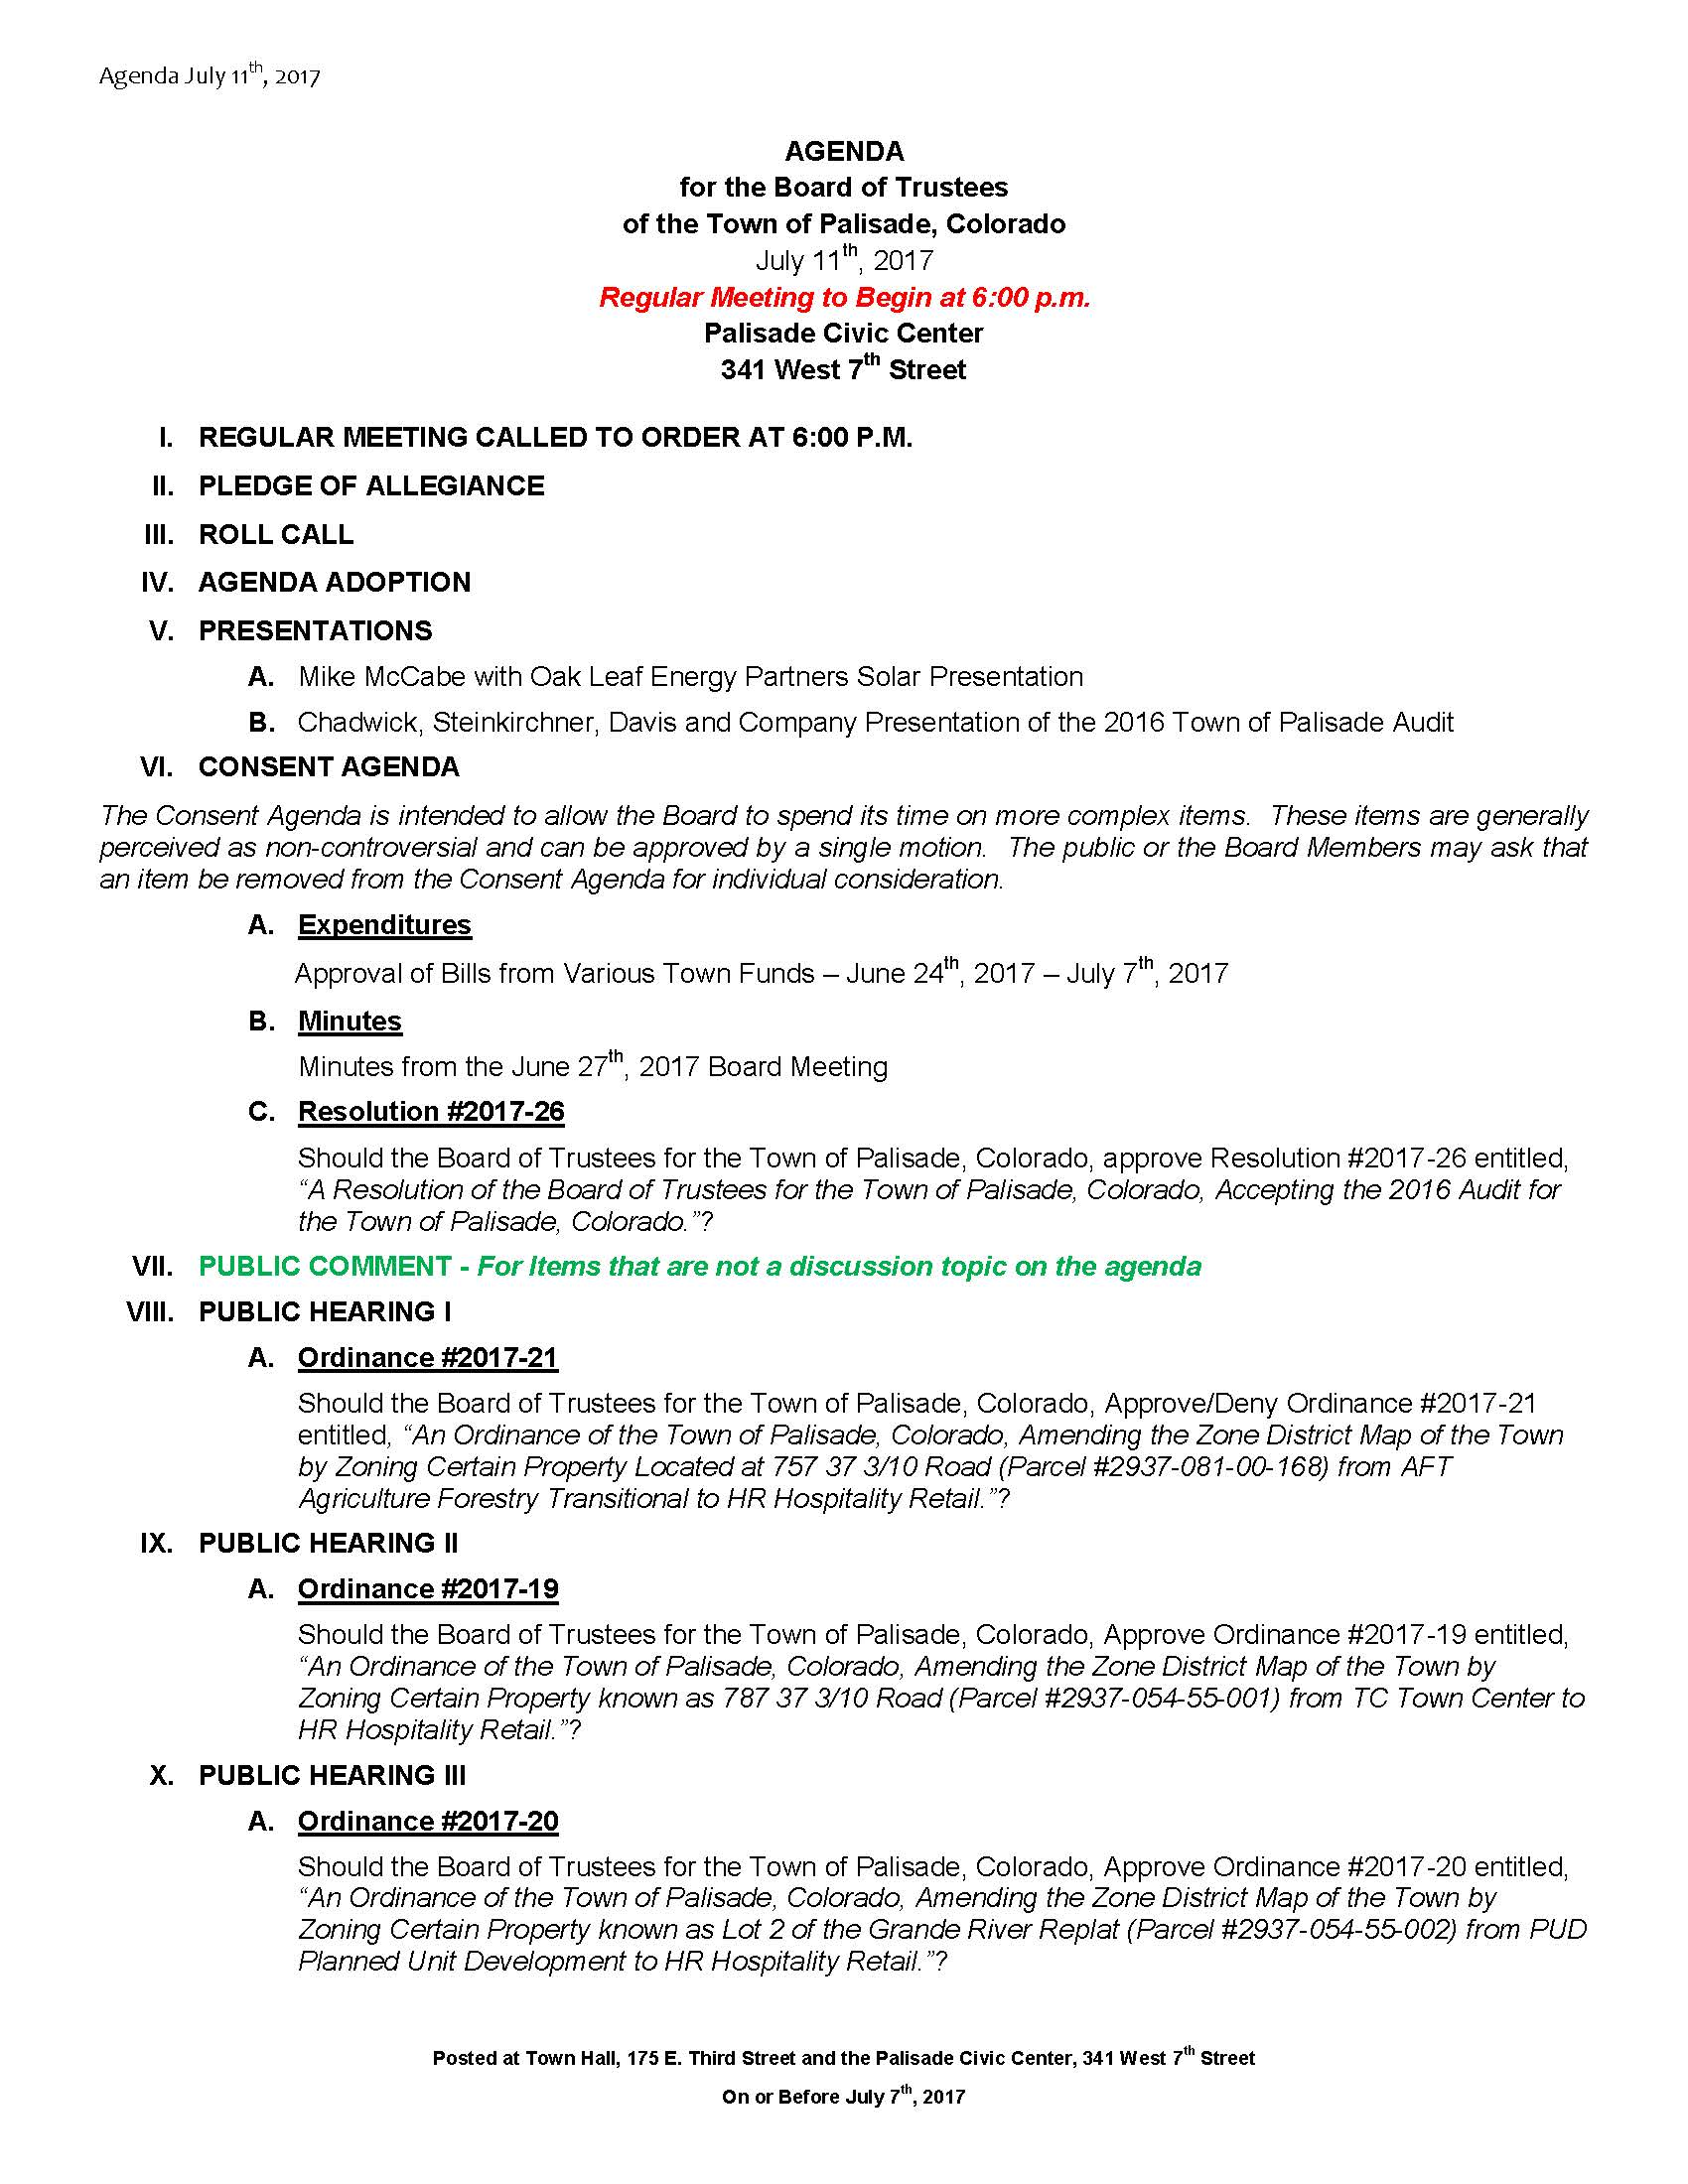 July 11th 2017 Board Meeting Agenda Page 1